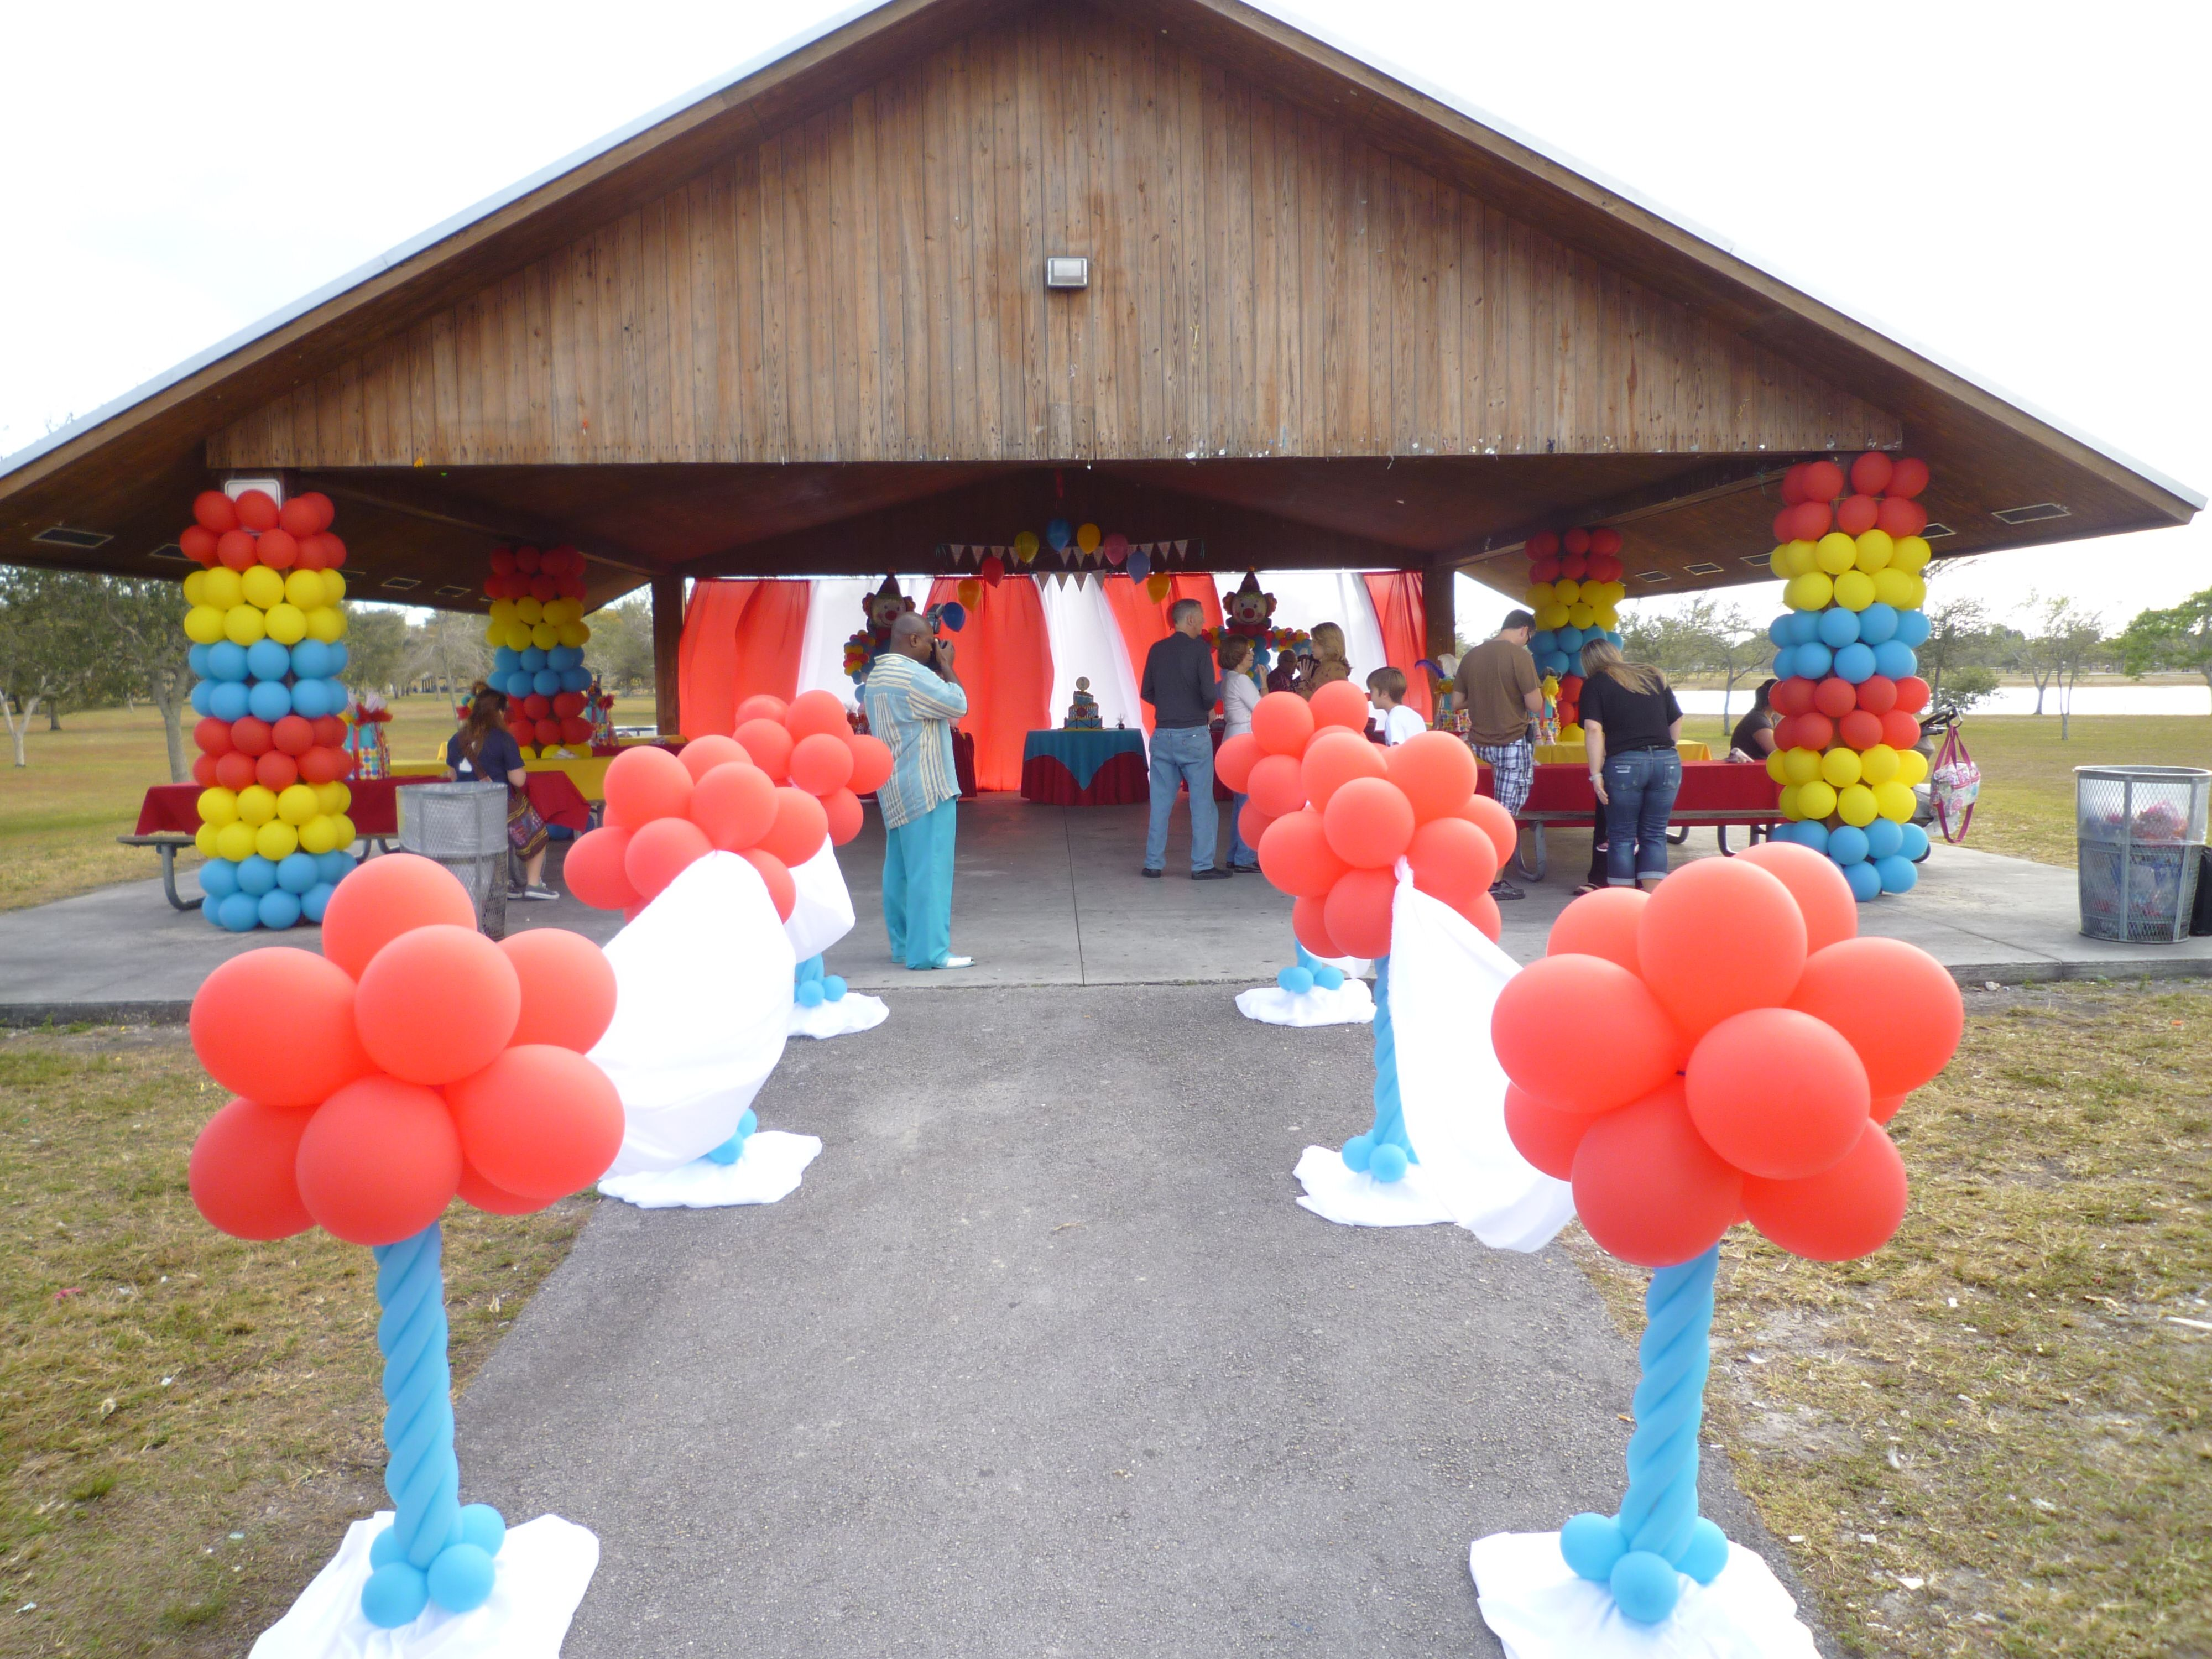 Welcome Balloon Entrance Clown Theme Decoration Www Dreamarkevents Com Kids Themed Birthday Parties Kids Party Decorations Event Planning Decorations